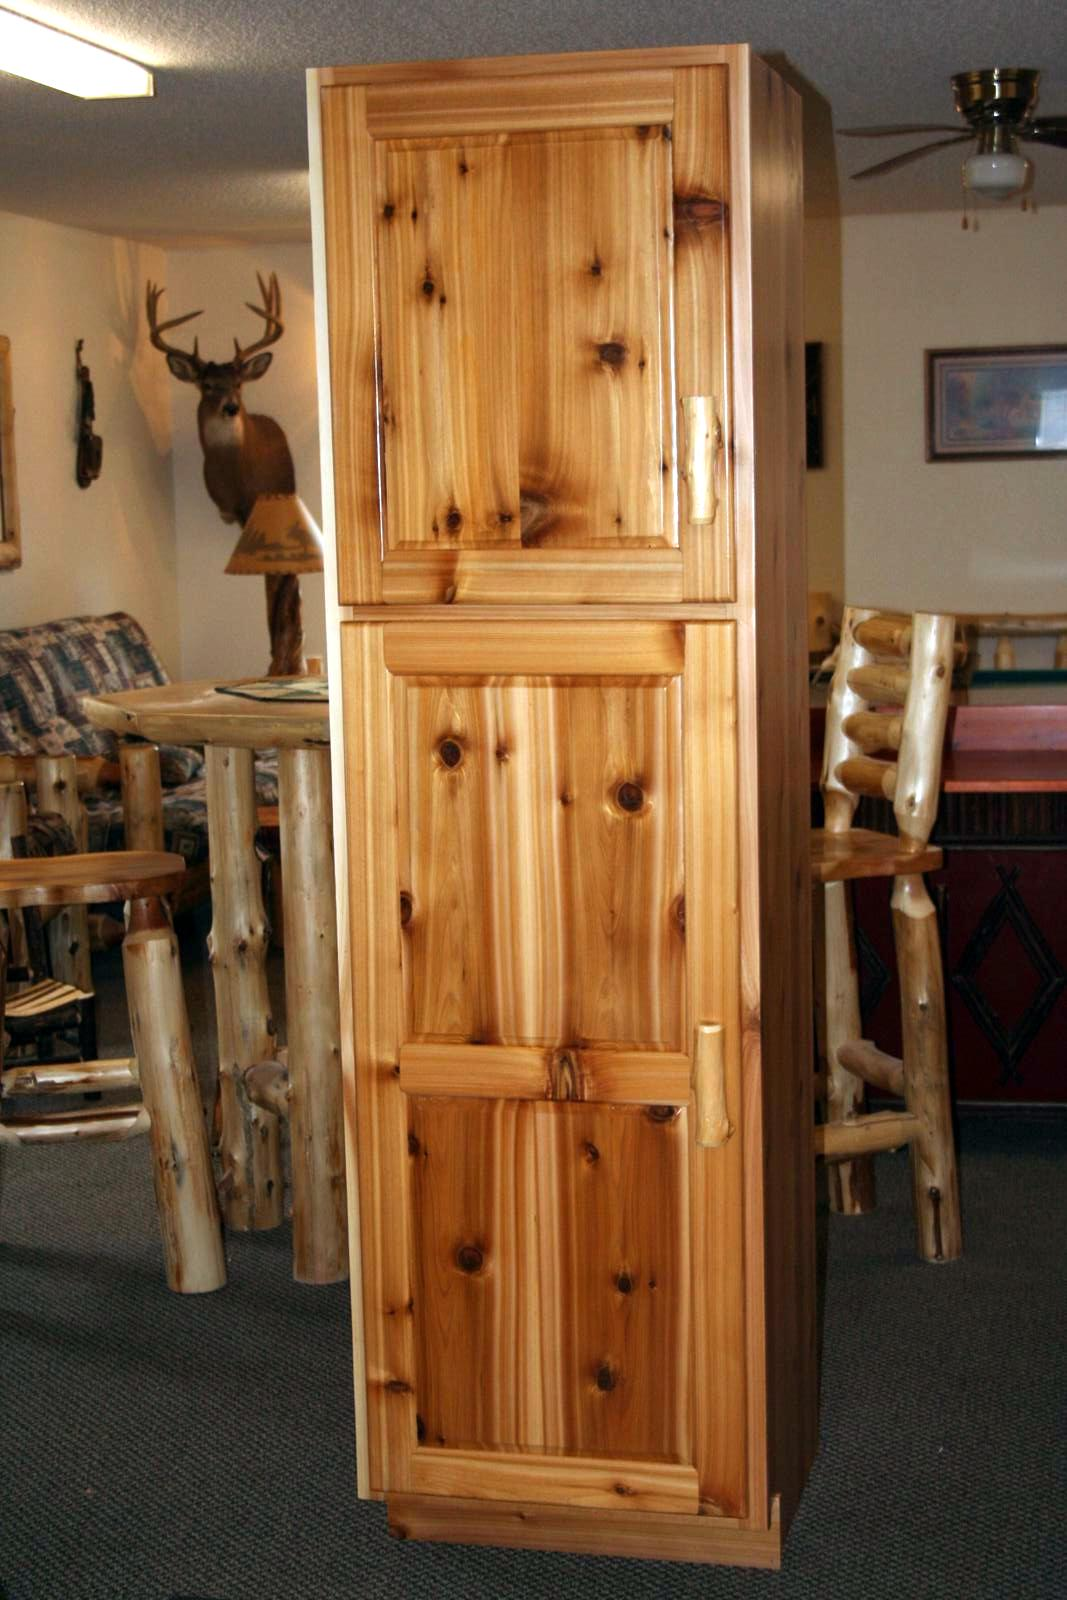 Rustic Cedar Linen Cabinet  Barn Wood Furniture  Rustic Barnwood and Log Furniture By Vienna